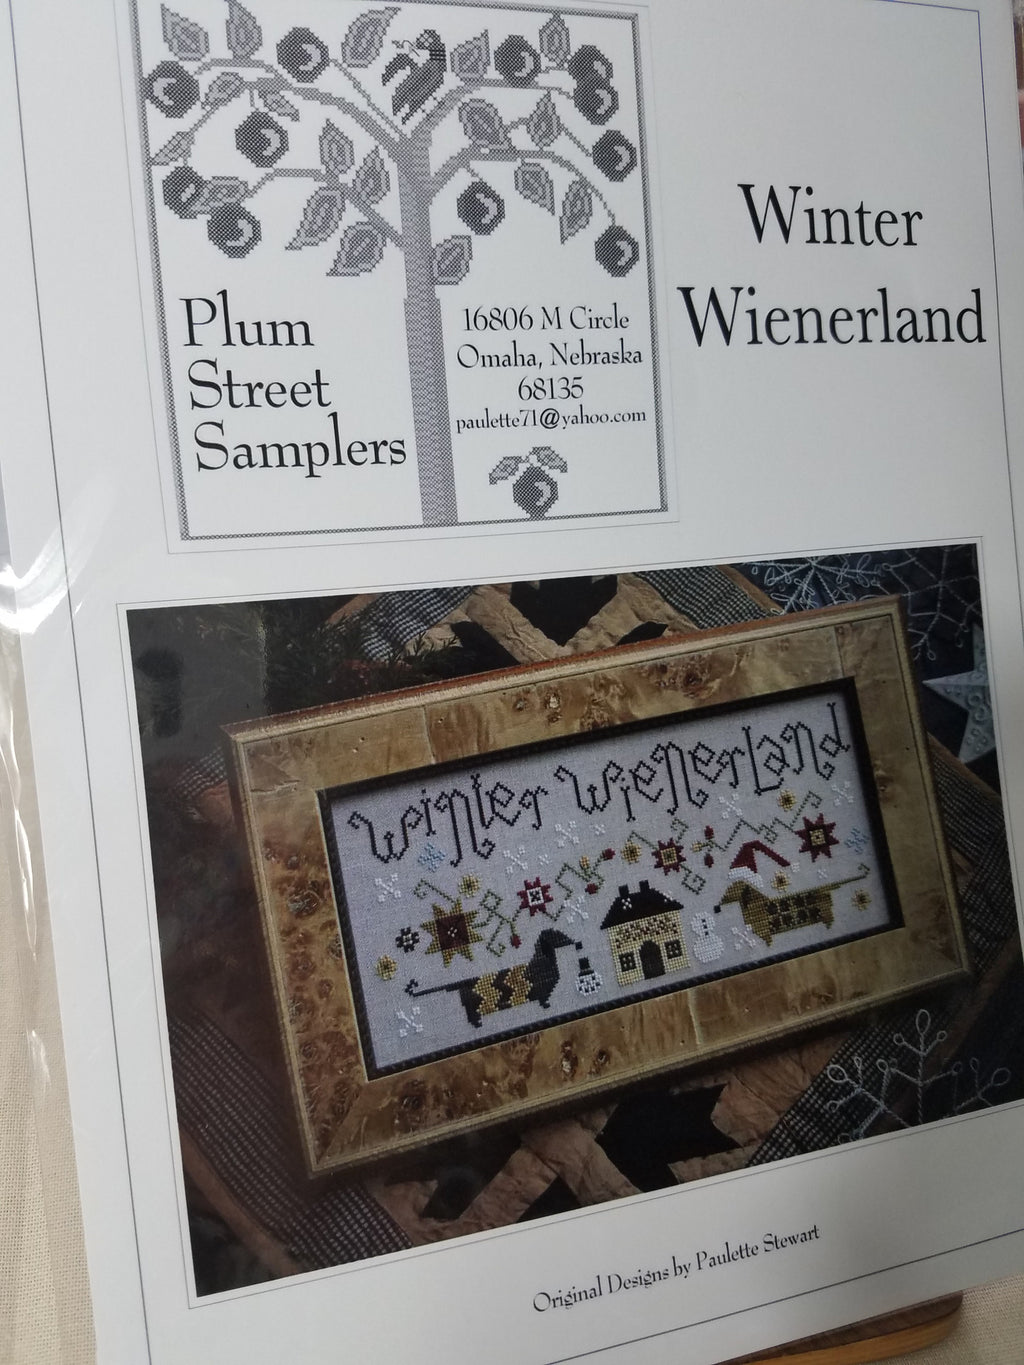 Winter Wienerland ~ Plum Street Samplers